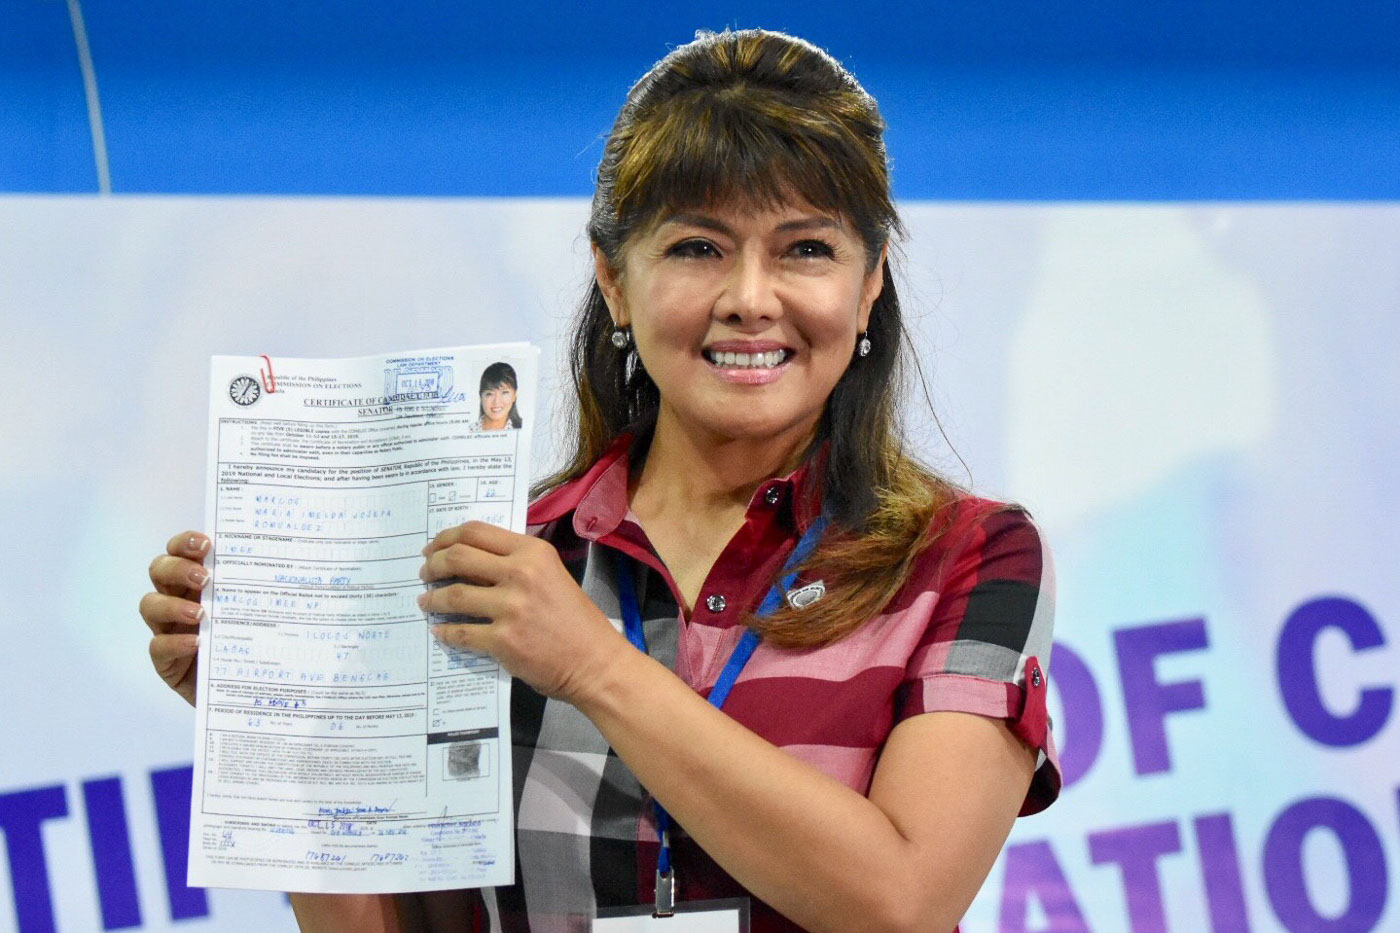 Ilocos Norte Governor Imee Marcos files her Certificate of Candidacy for Senator on October 16, 2018, at the Comelec office in Manila. Photo by Angie de Silva/Rappler